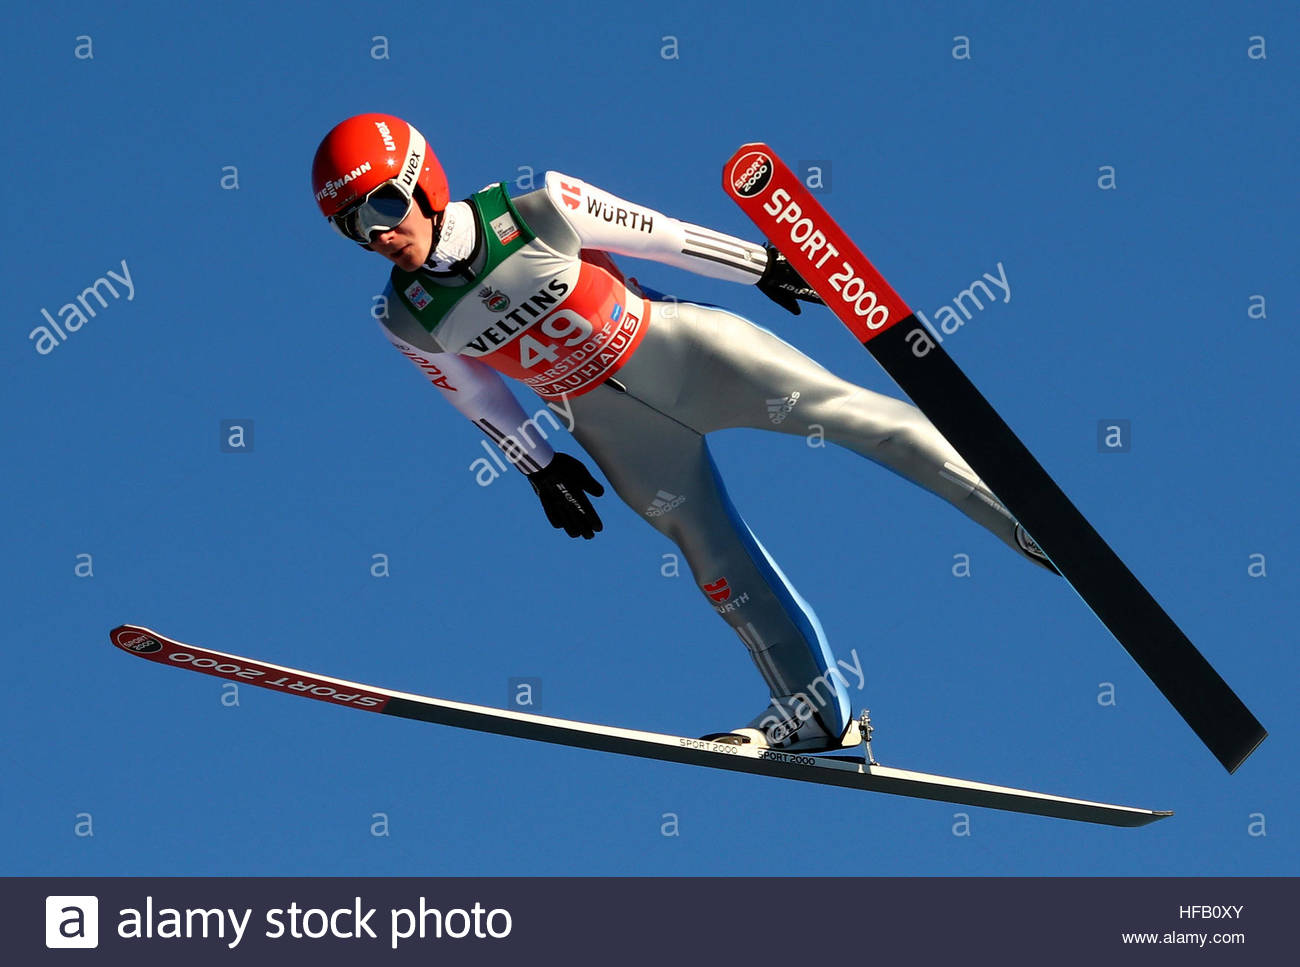 Ski Jumping - 65th four hills tournament trial round - Oberstdorf, Germany - 29/12/2016 - Germany's Stephan Leyhe Stock Foto